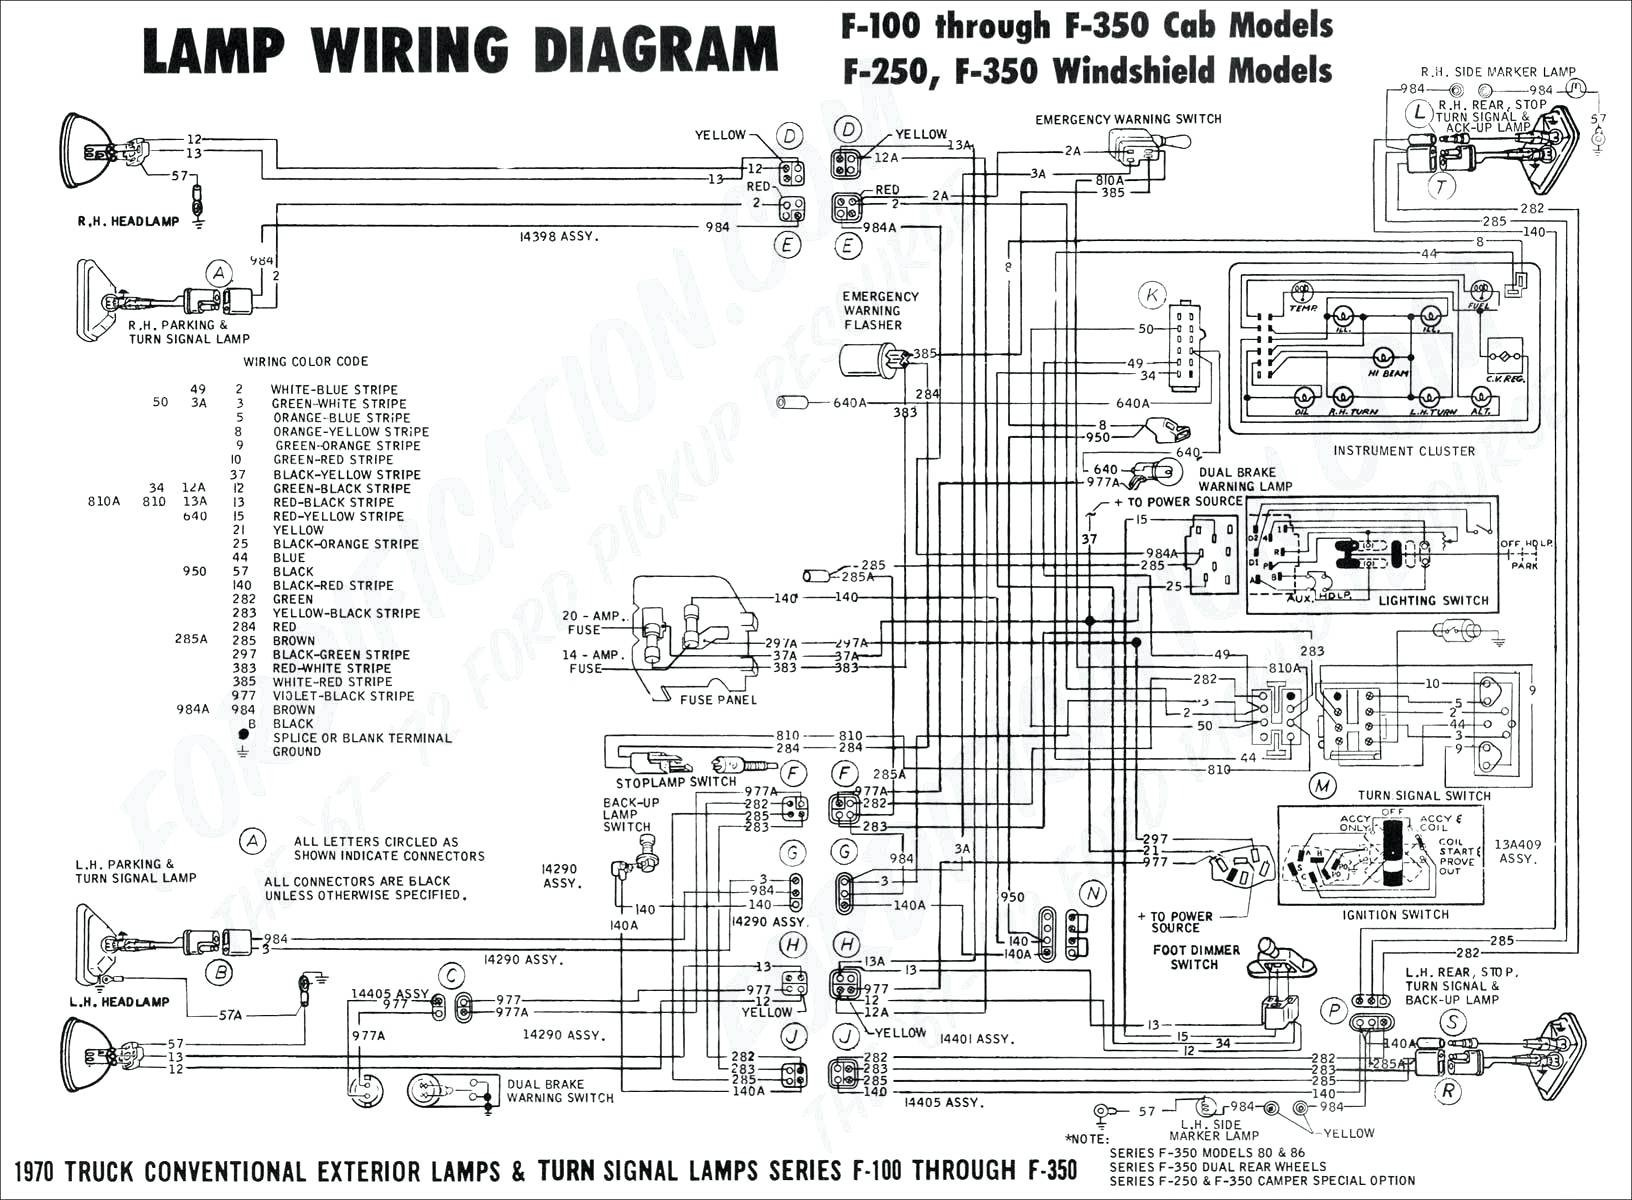 2000 chevy silverado brake light wiring diagram 2005 chevy silverado wiring diagram unique 2005 chevy silverado of 2000 chevy silverado brake light wiring diagram sterling brake light wiring diagram wiring library